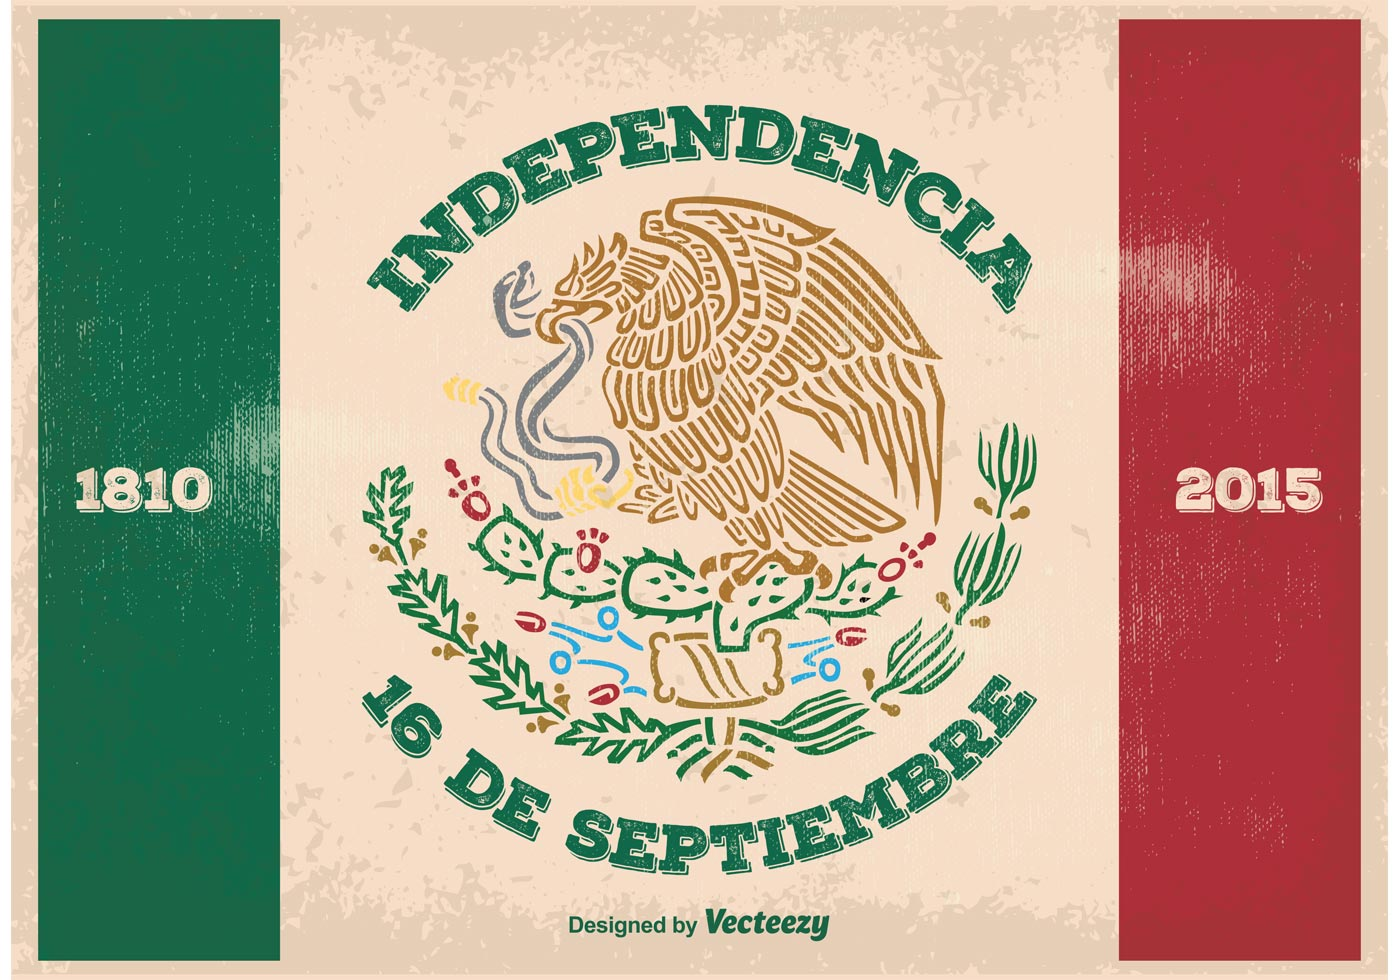 mexican independence Mexico has a long history of war and rebellion the major holidays of mexico come from their conflict with spain and their unwillingness to live their lives as slaves to a foreign ruler.